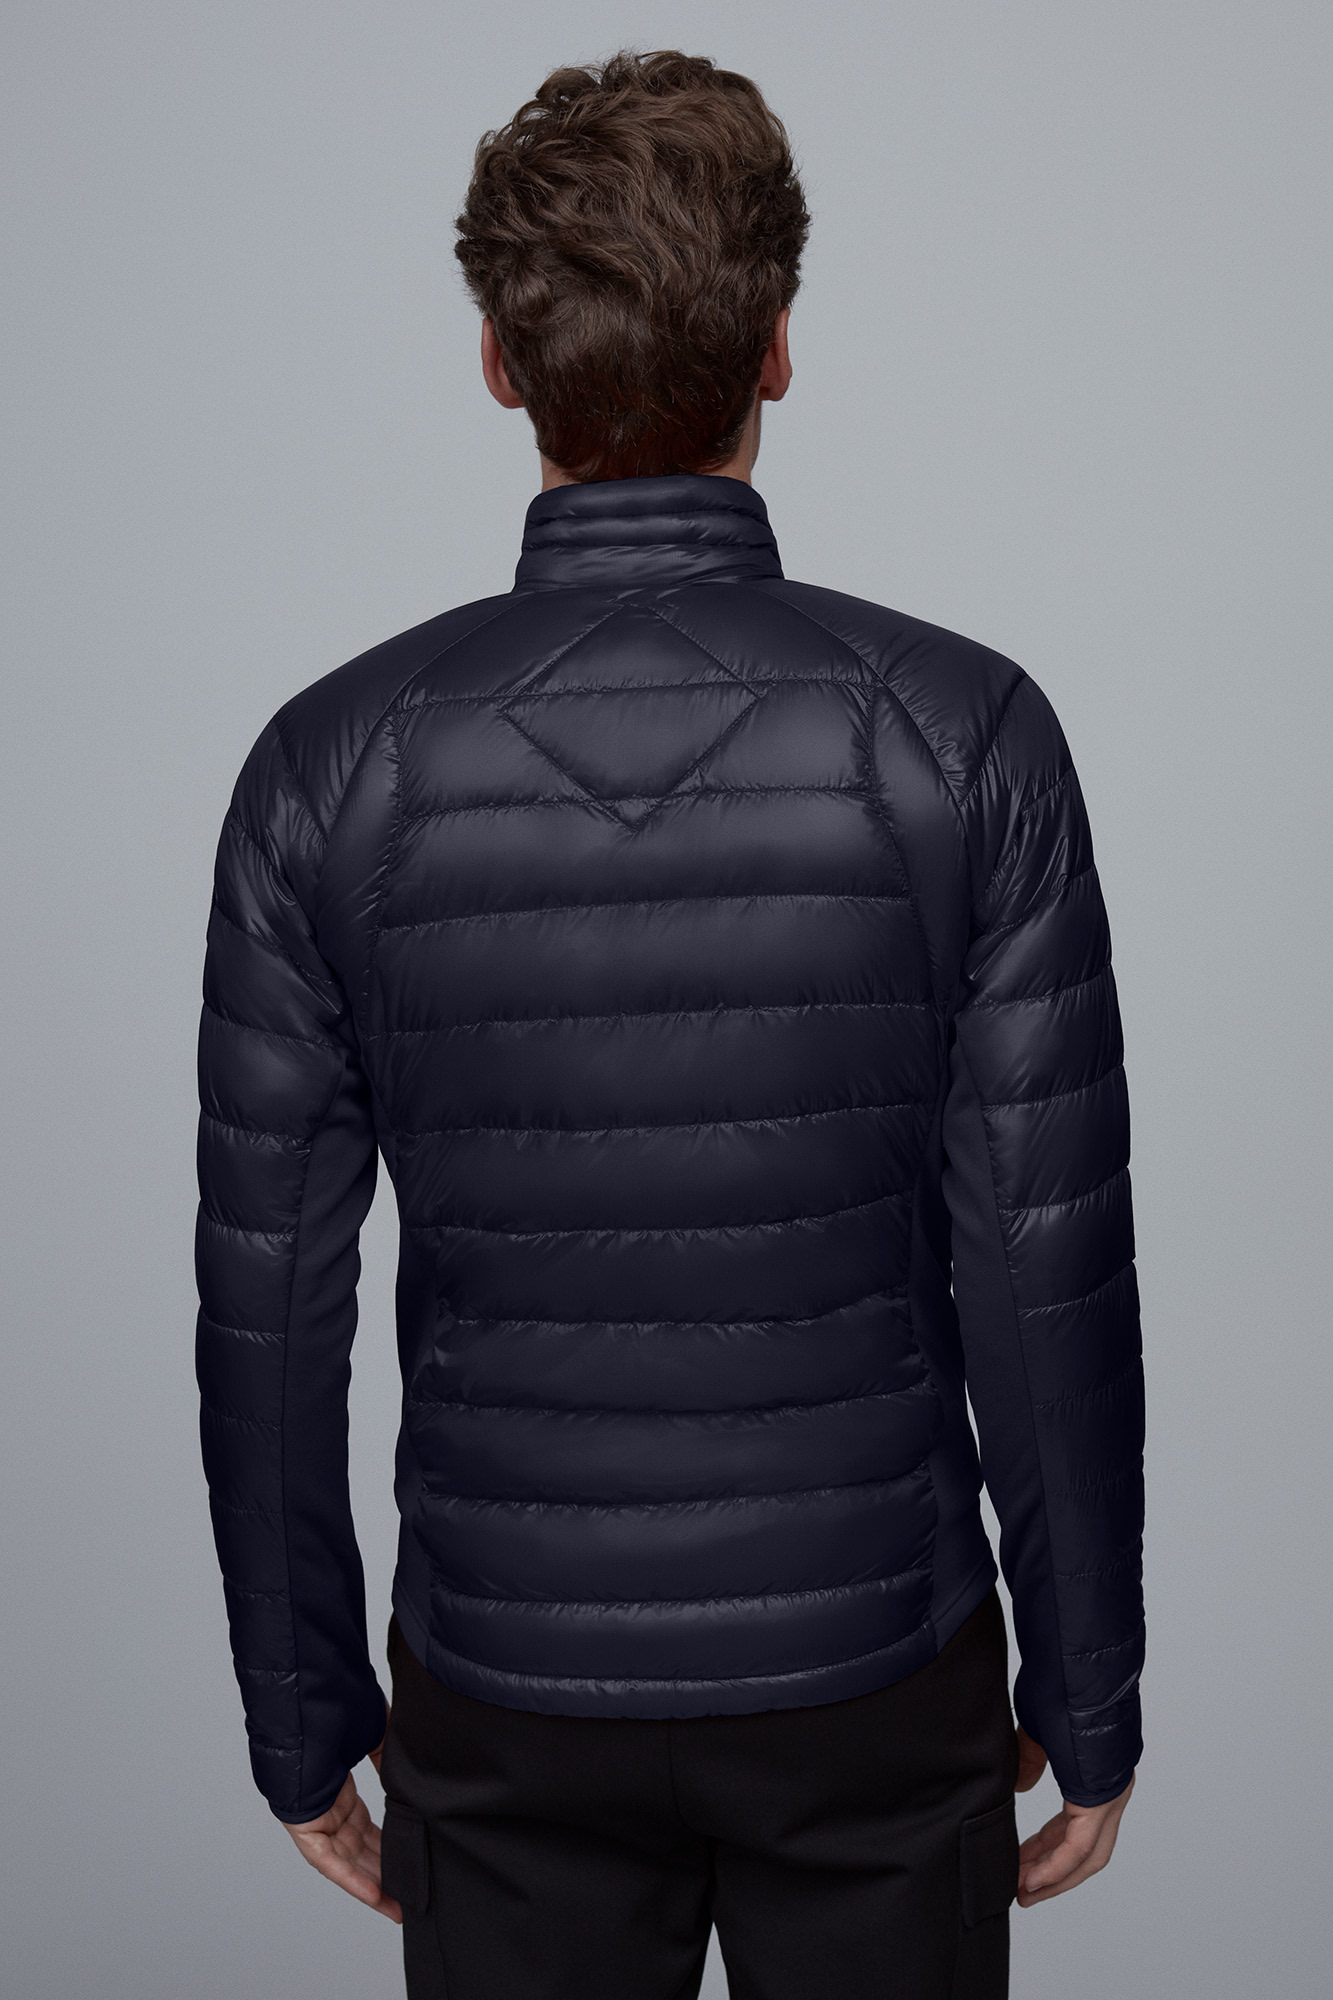 HyBridge Lite Jacket Black Label | Canada Goose® - photo#29